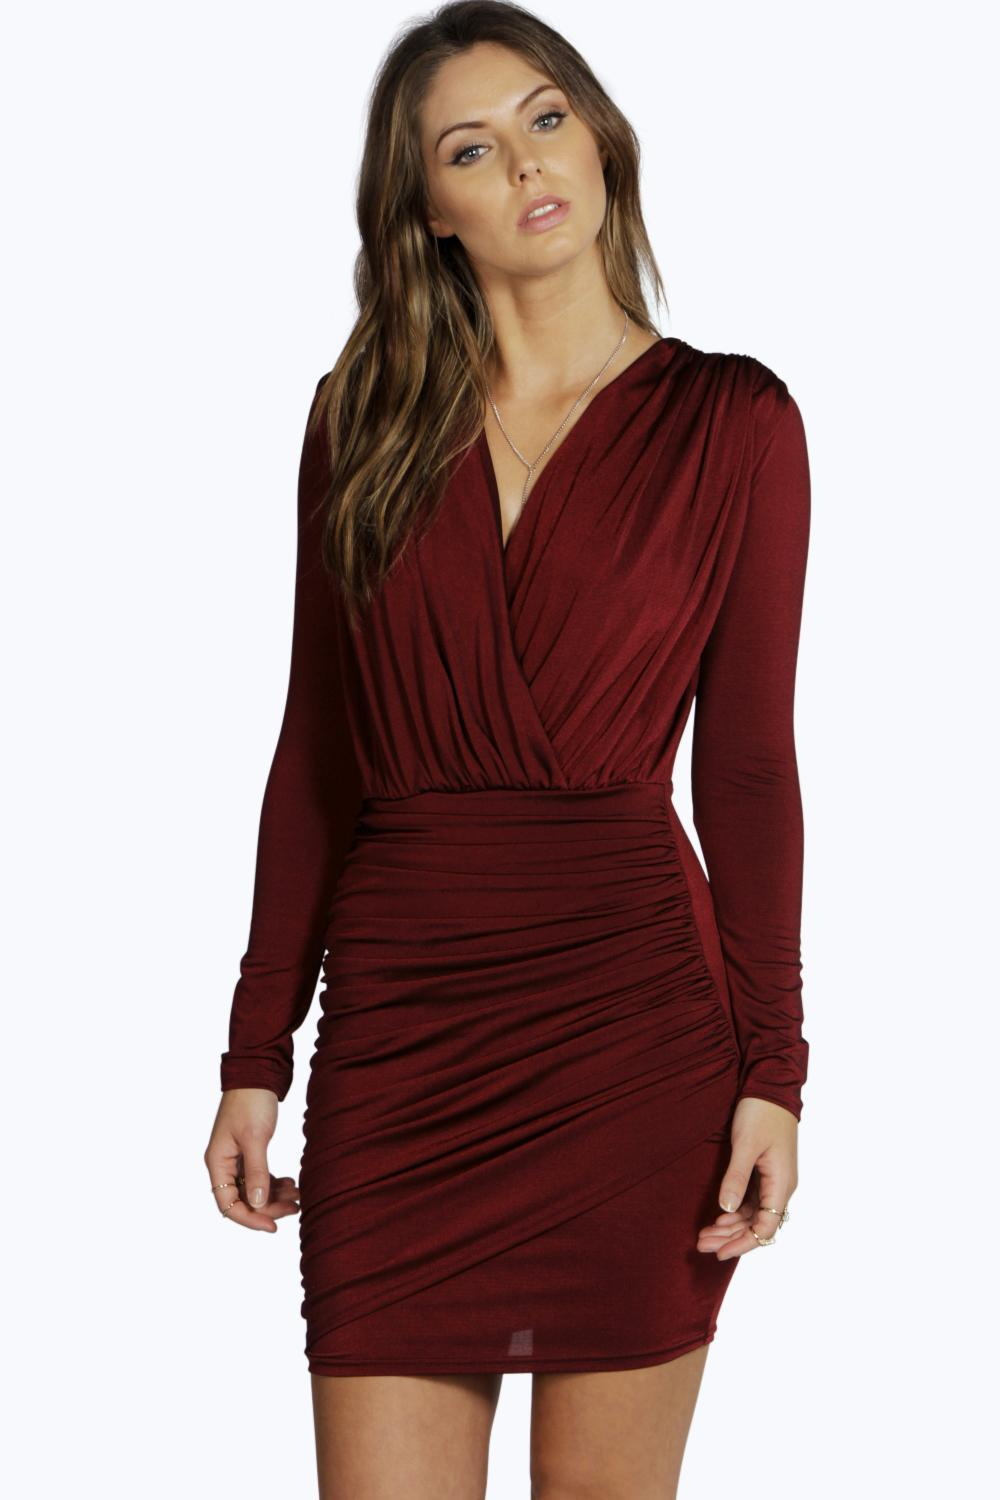 Slinky Wrap Long Sleeve Bodycon Dress Berry - length: mini; neckline: low v-neck; fit: tight; pattern: plain; style: bodycon; waist detail: twist front waist detail/nipped in at waist on one side/soft pleats/draping/ruching/gathering waist detail; bust detail: ruching/gathering/draping/layers/pintuck pleats at bust; predominant colour: burgundy; occasions: evening; fibres: polyester/polyamide - stretch; hip detail: ruching/gathering at hip; sleeve length: long sleeve; sleeve style: standard; pattern type: fabric; texture group: jersey - stretchy/drapey; season: a/w 2015; wardrobe: event